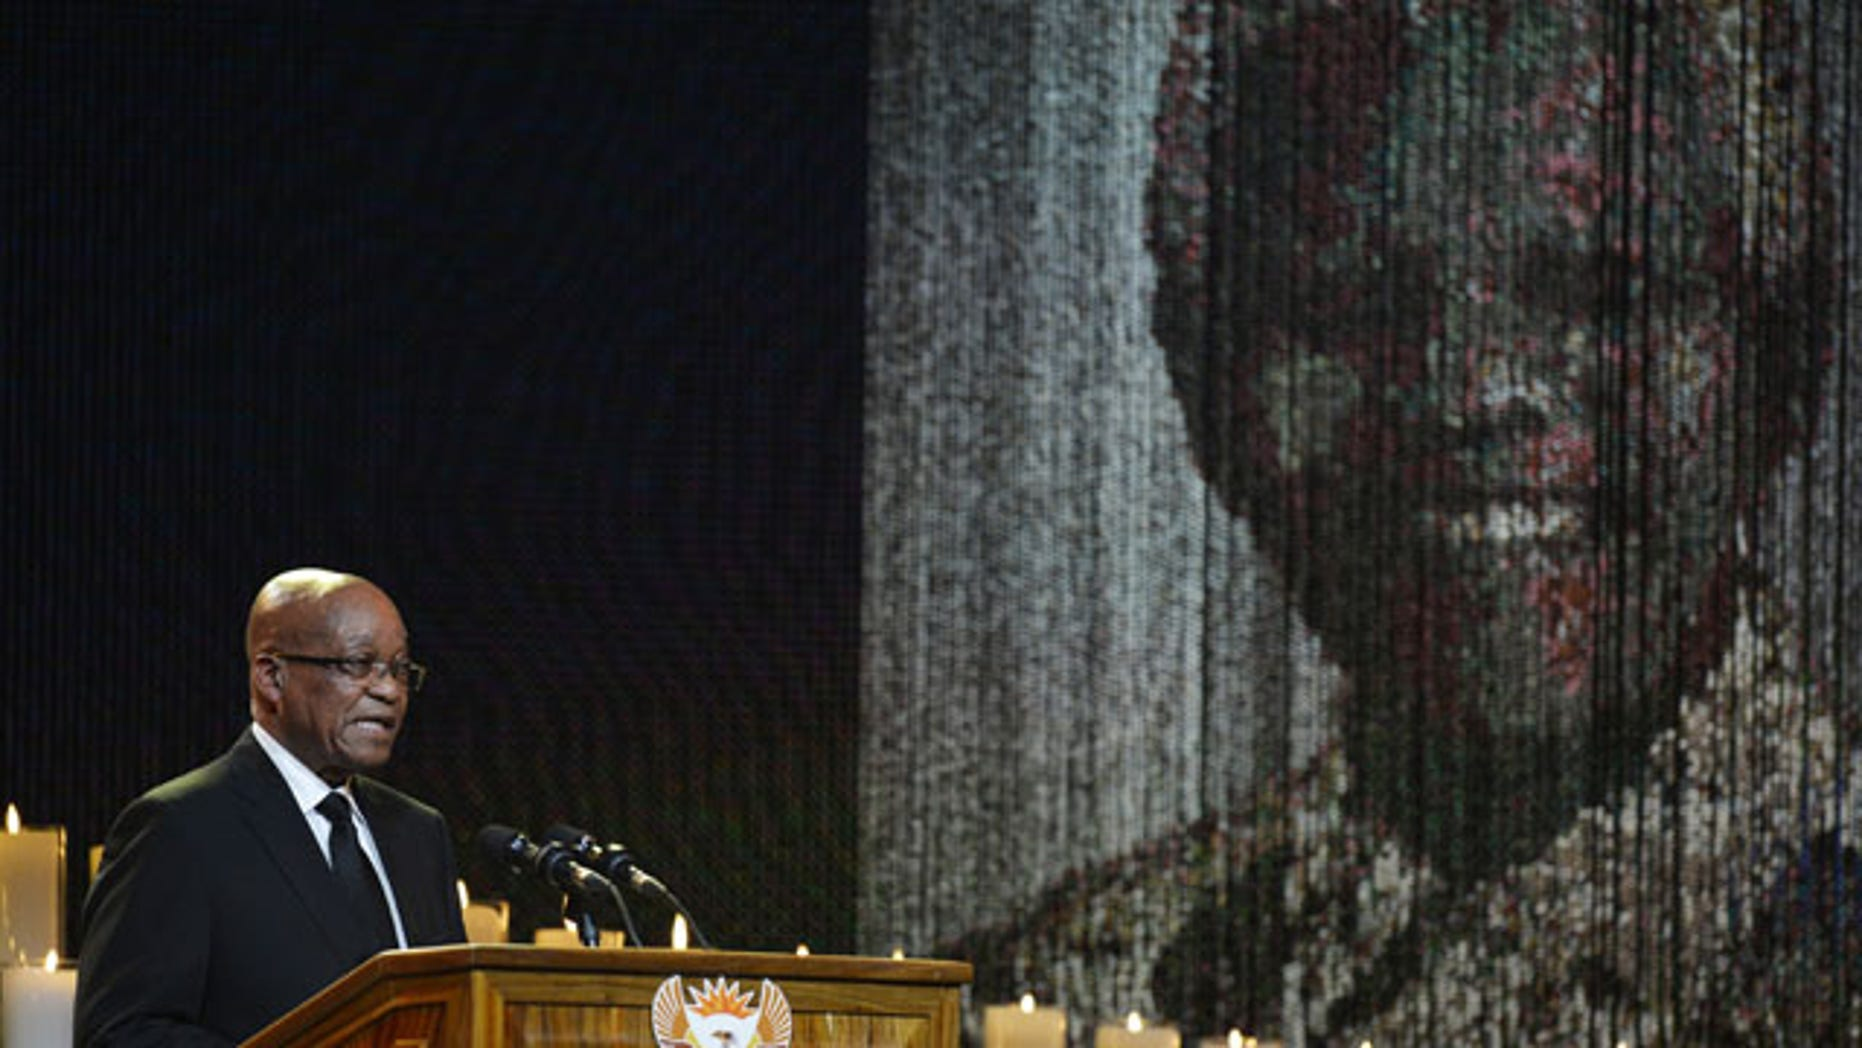 December 15, 2013: South Africa President Jacob Zuma speaks during the funeral service for former South African President Nelson Mandela in Qunu, South Africa. (AP Photo/Odd Andersen, Pool)